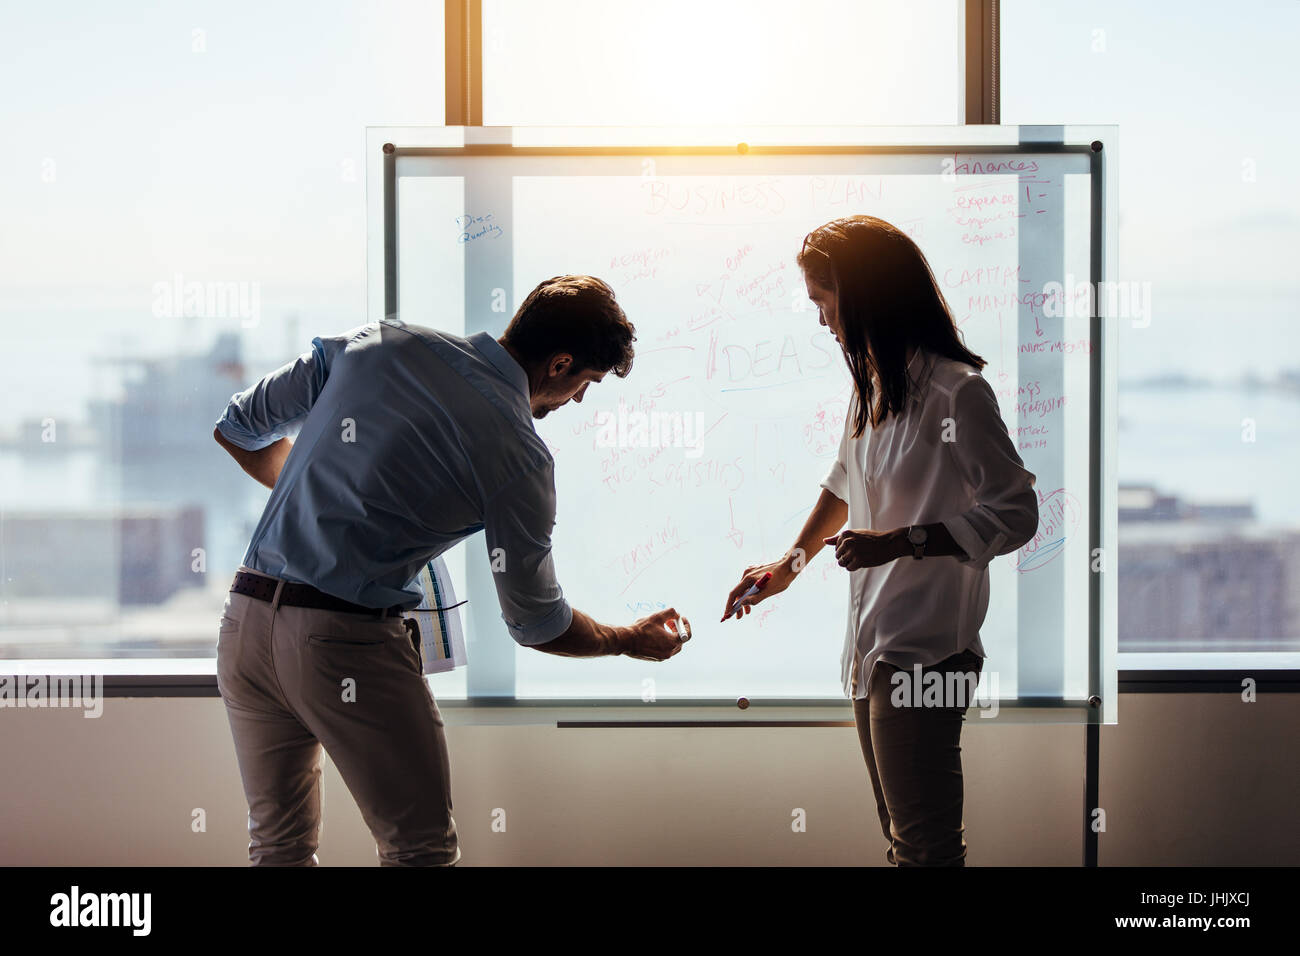 Man and woman entrepreneurs writing business ideas on whiteboard. Business investors discussing business ideas in - Stock Image